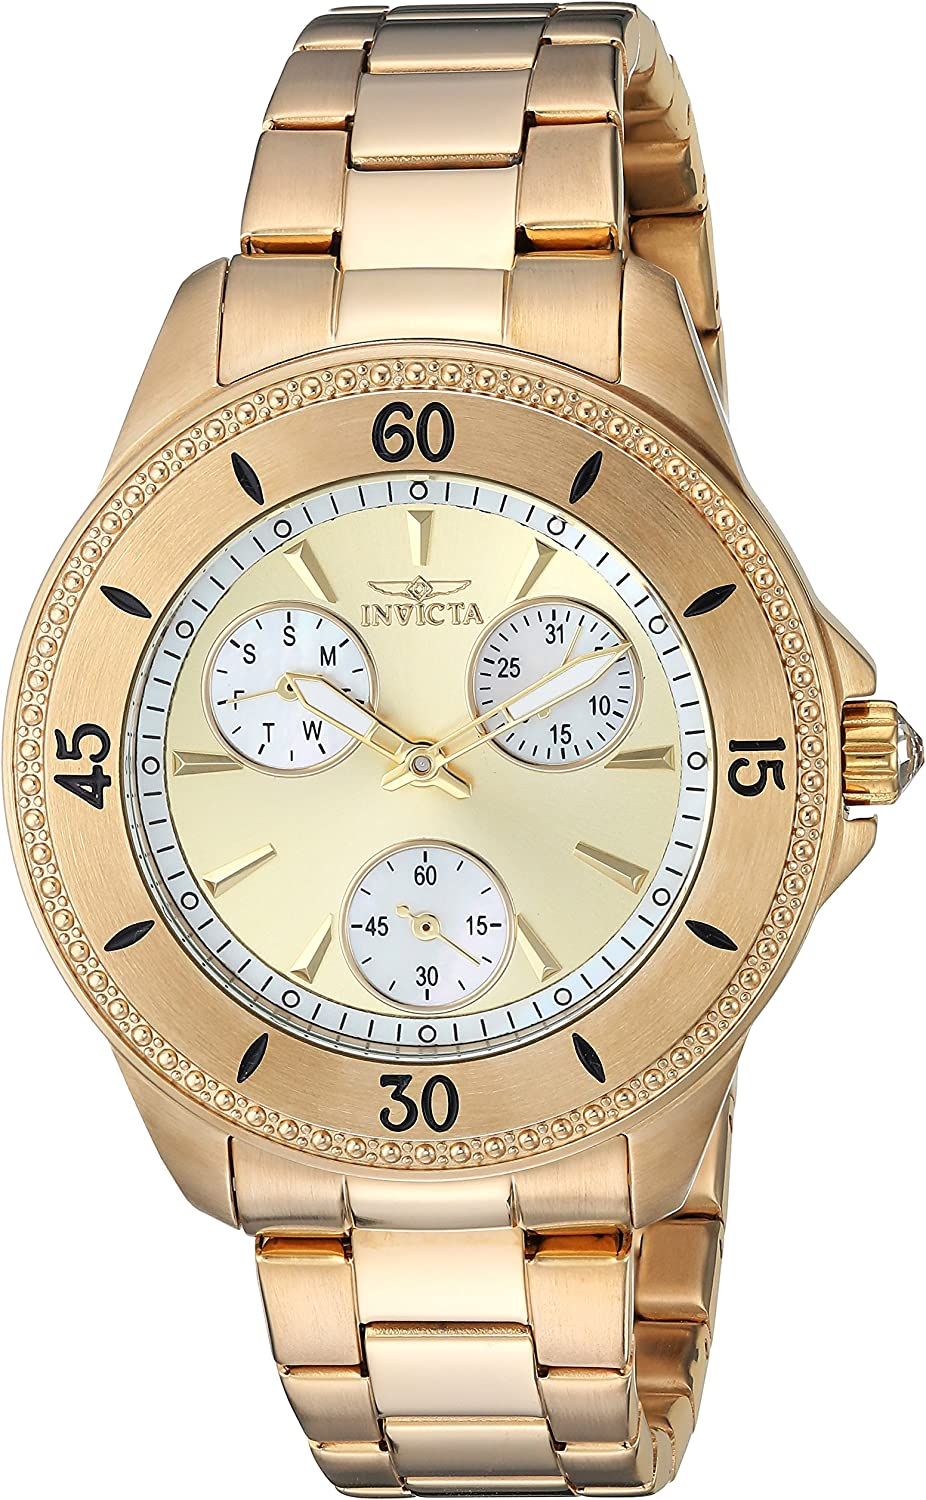 Invicta Women s Angel Quartz Watch with Stainless-Steel Strap, Gold, 8 Model 22969